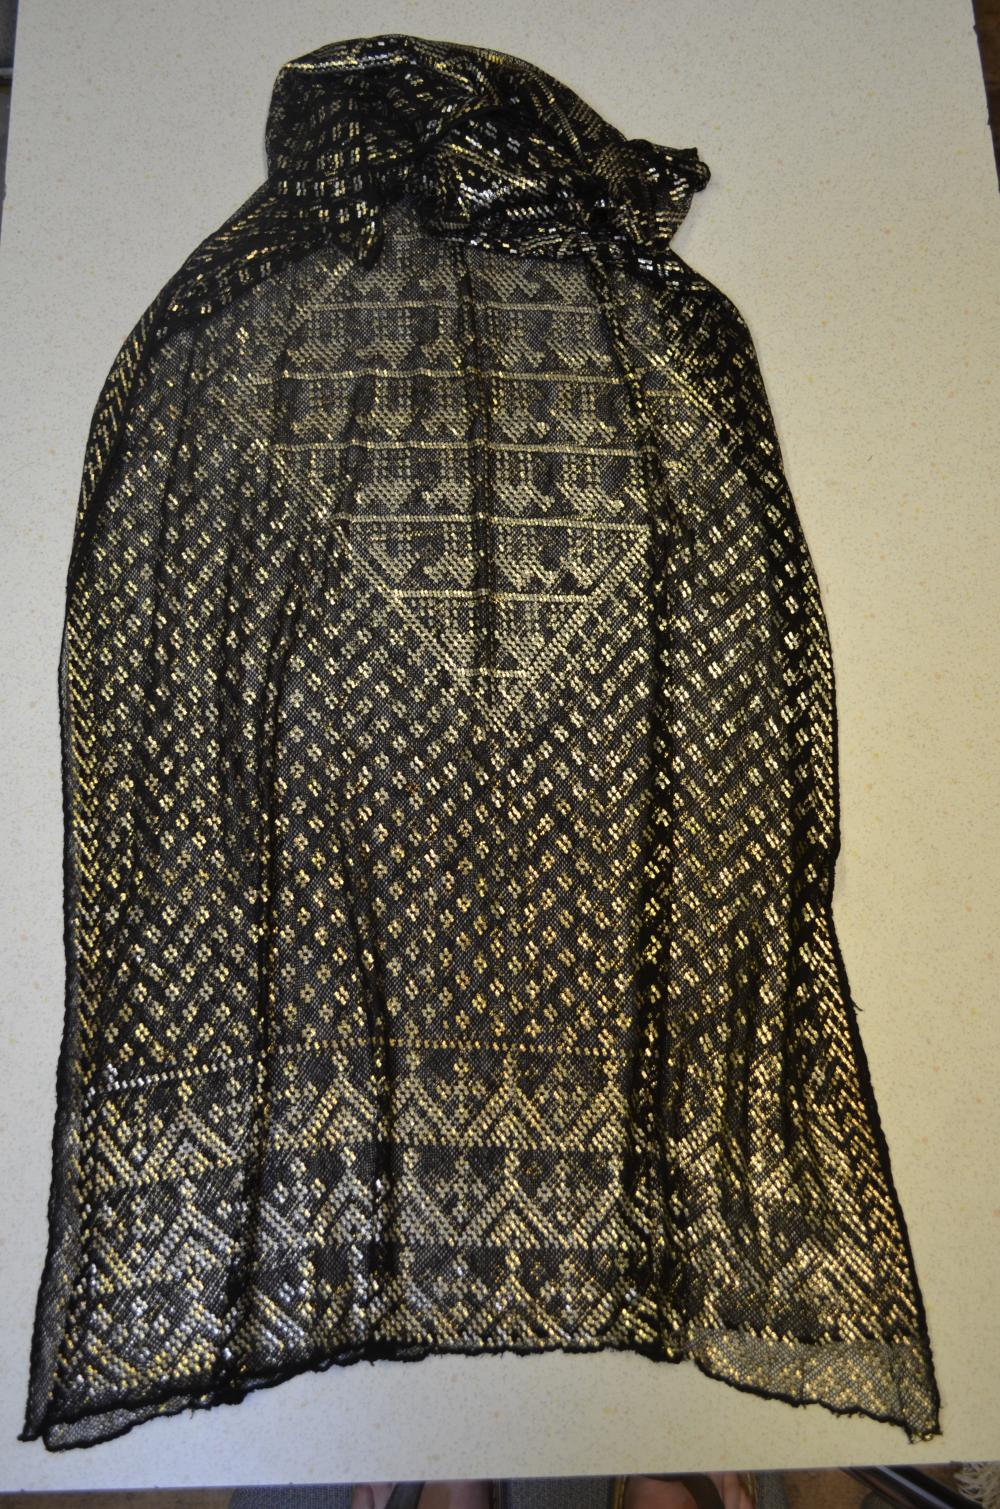 Egyptian assuit silver and net shawl